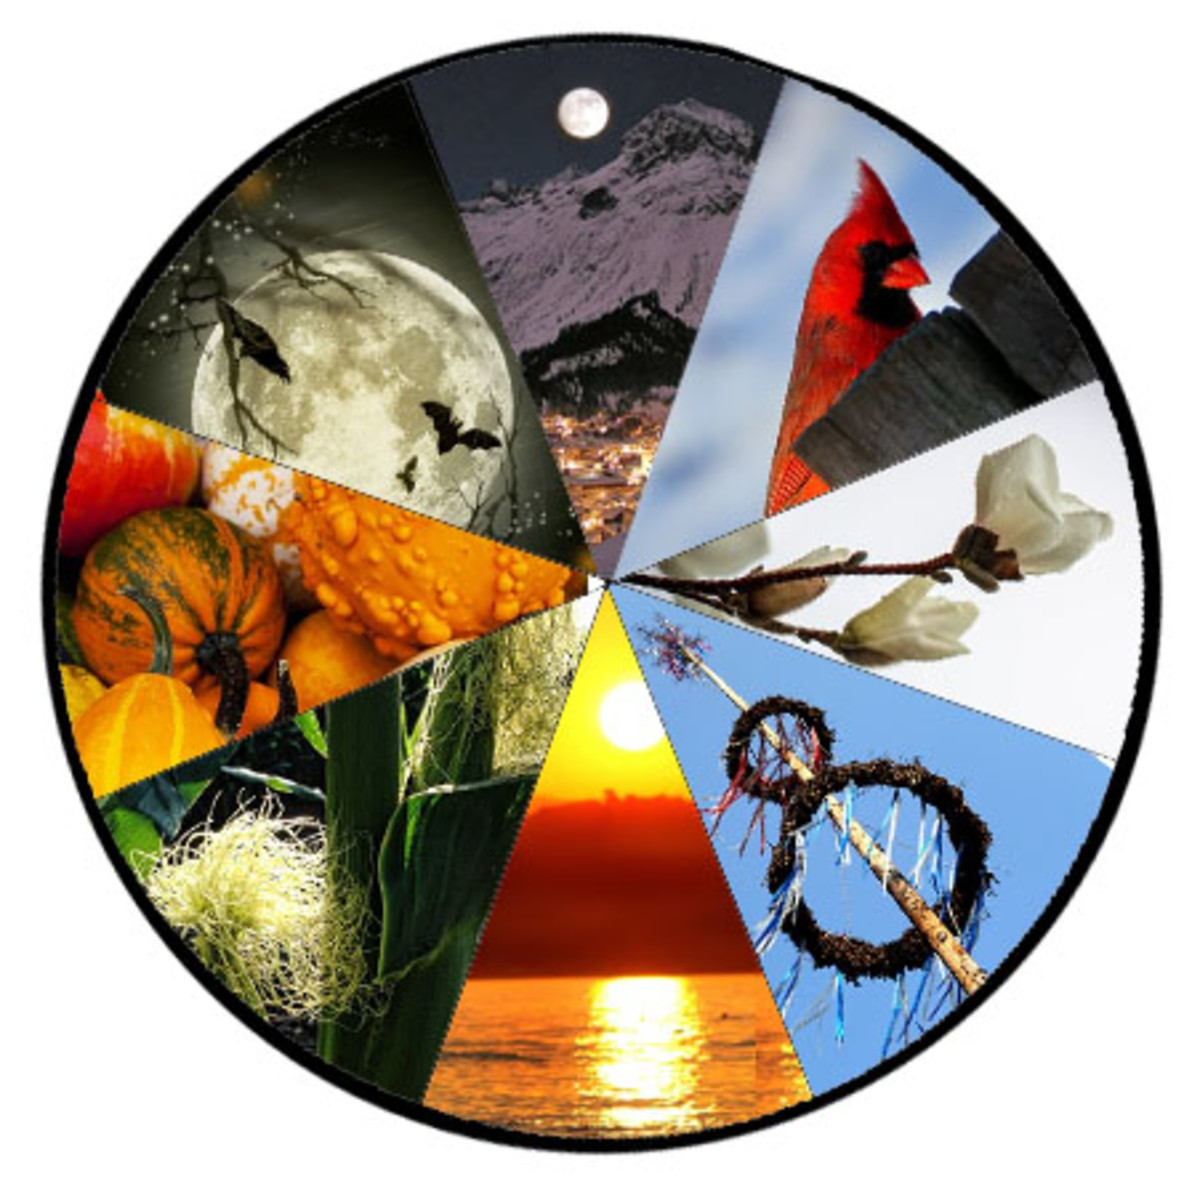 wicca-for-beginners-wheel-of-the-year-resource-guide